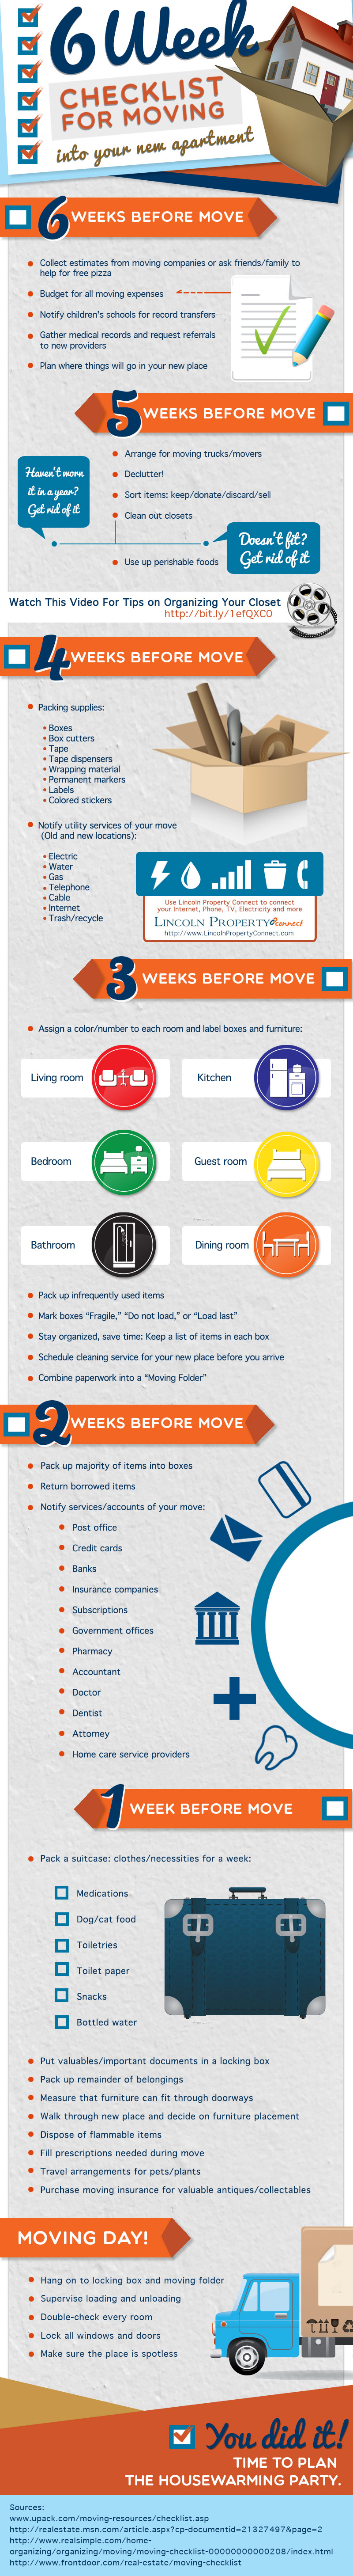 6 Week Checklist for Moving into Your New Apartment | Visual.ly